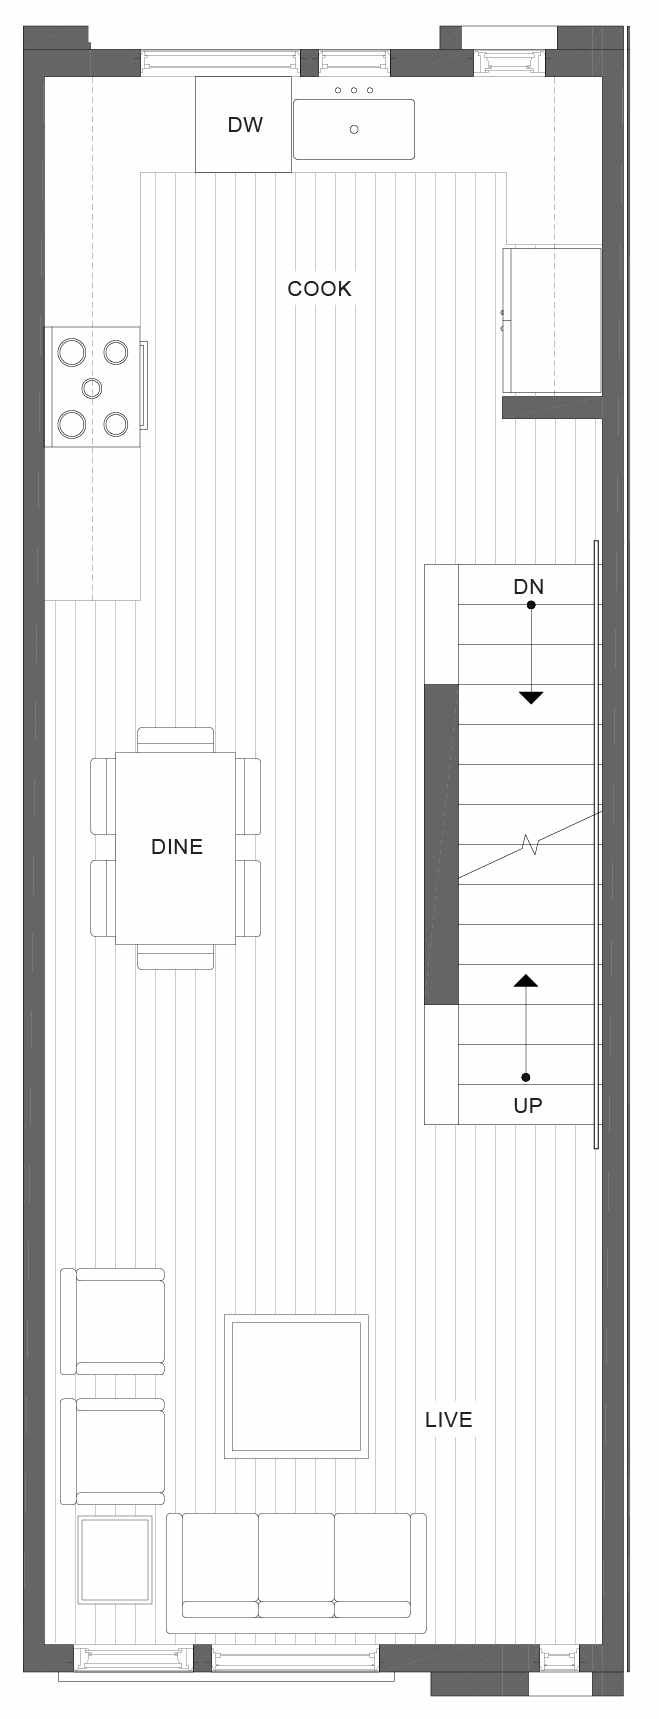 Second Floor Plan of 1105C 14th Ave in the Corazon Central Townhomes